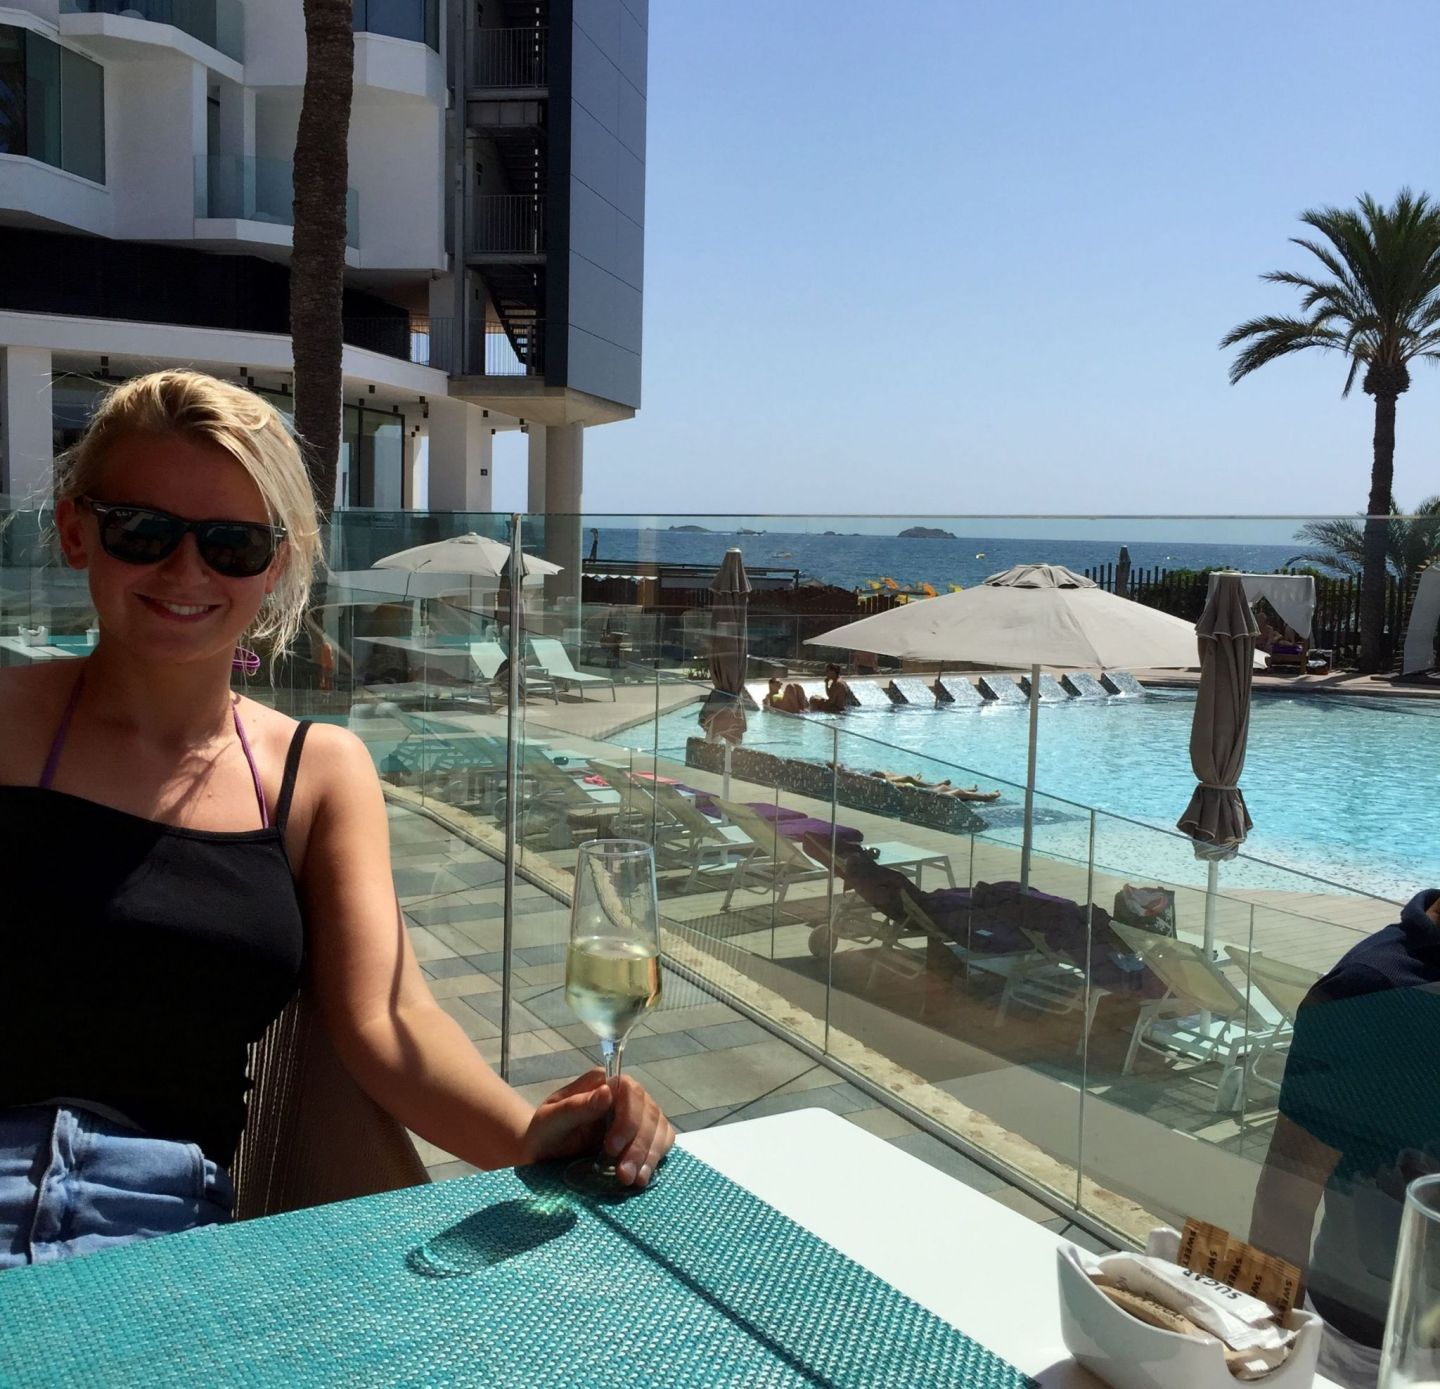 Laura at the pool in Ibiza